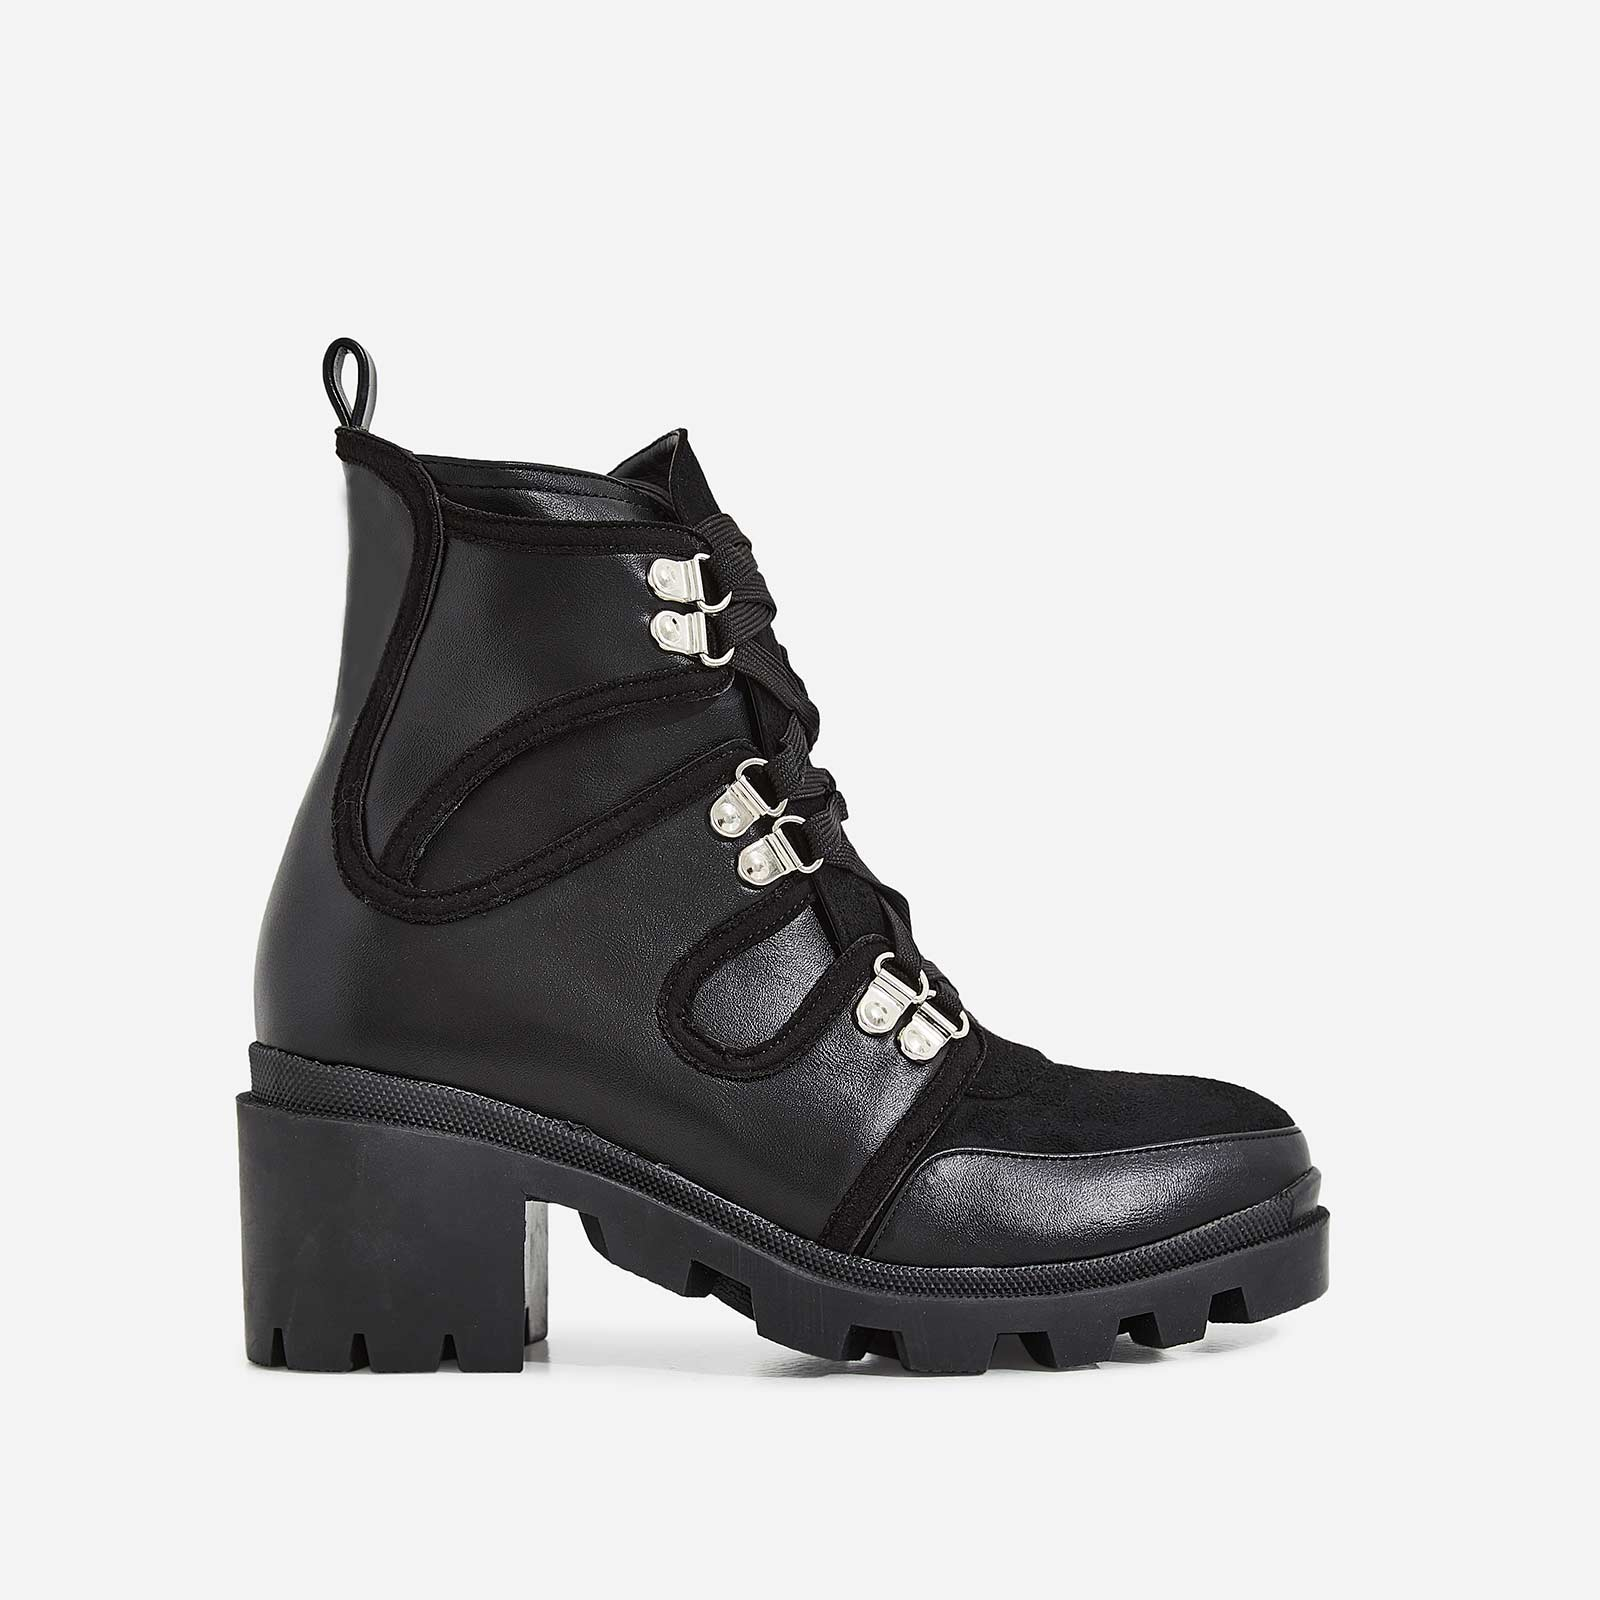 Ellis Lace Up Ankle Biker Boot In Black Faux Leather